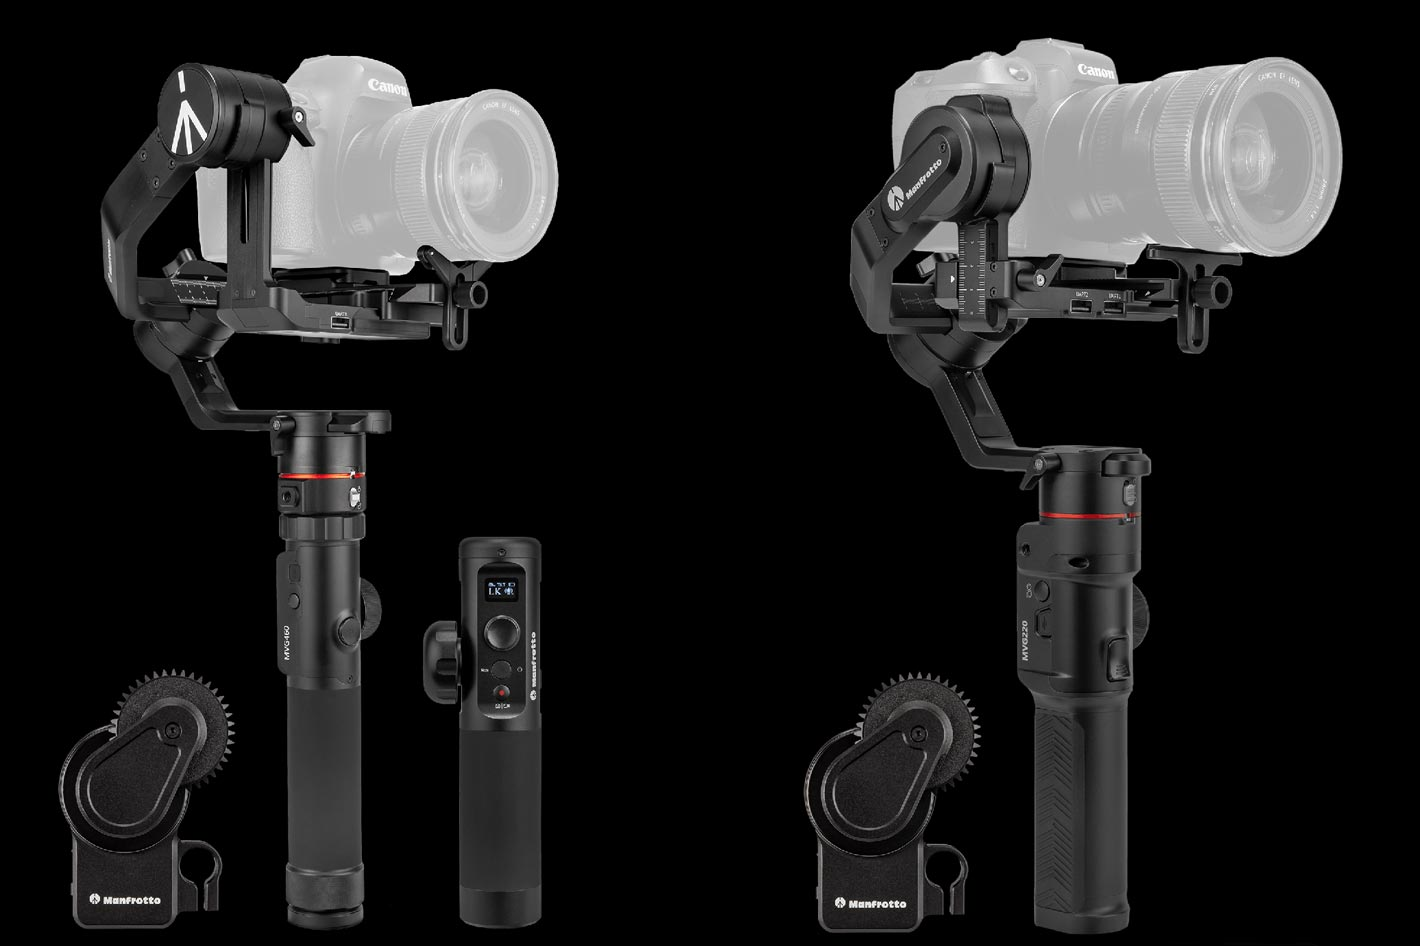 Manfrotto gimbals expanded with the GimBoom